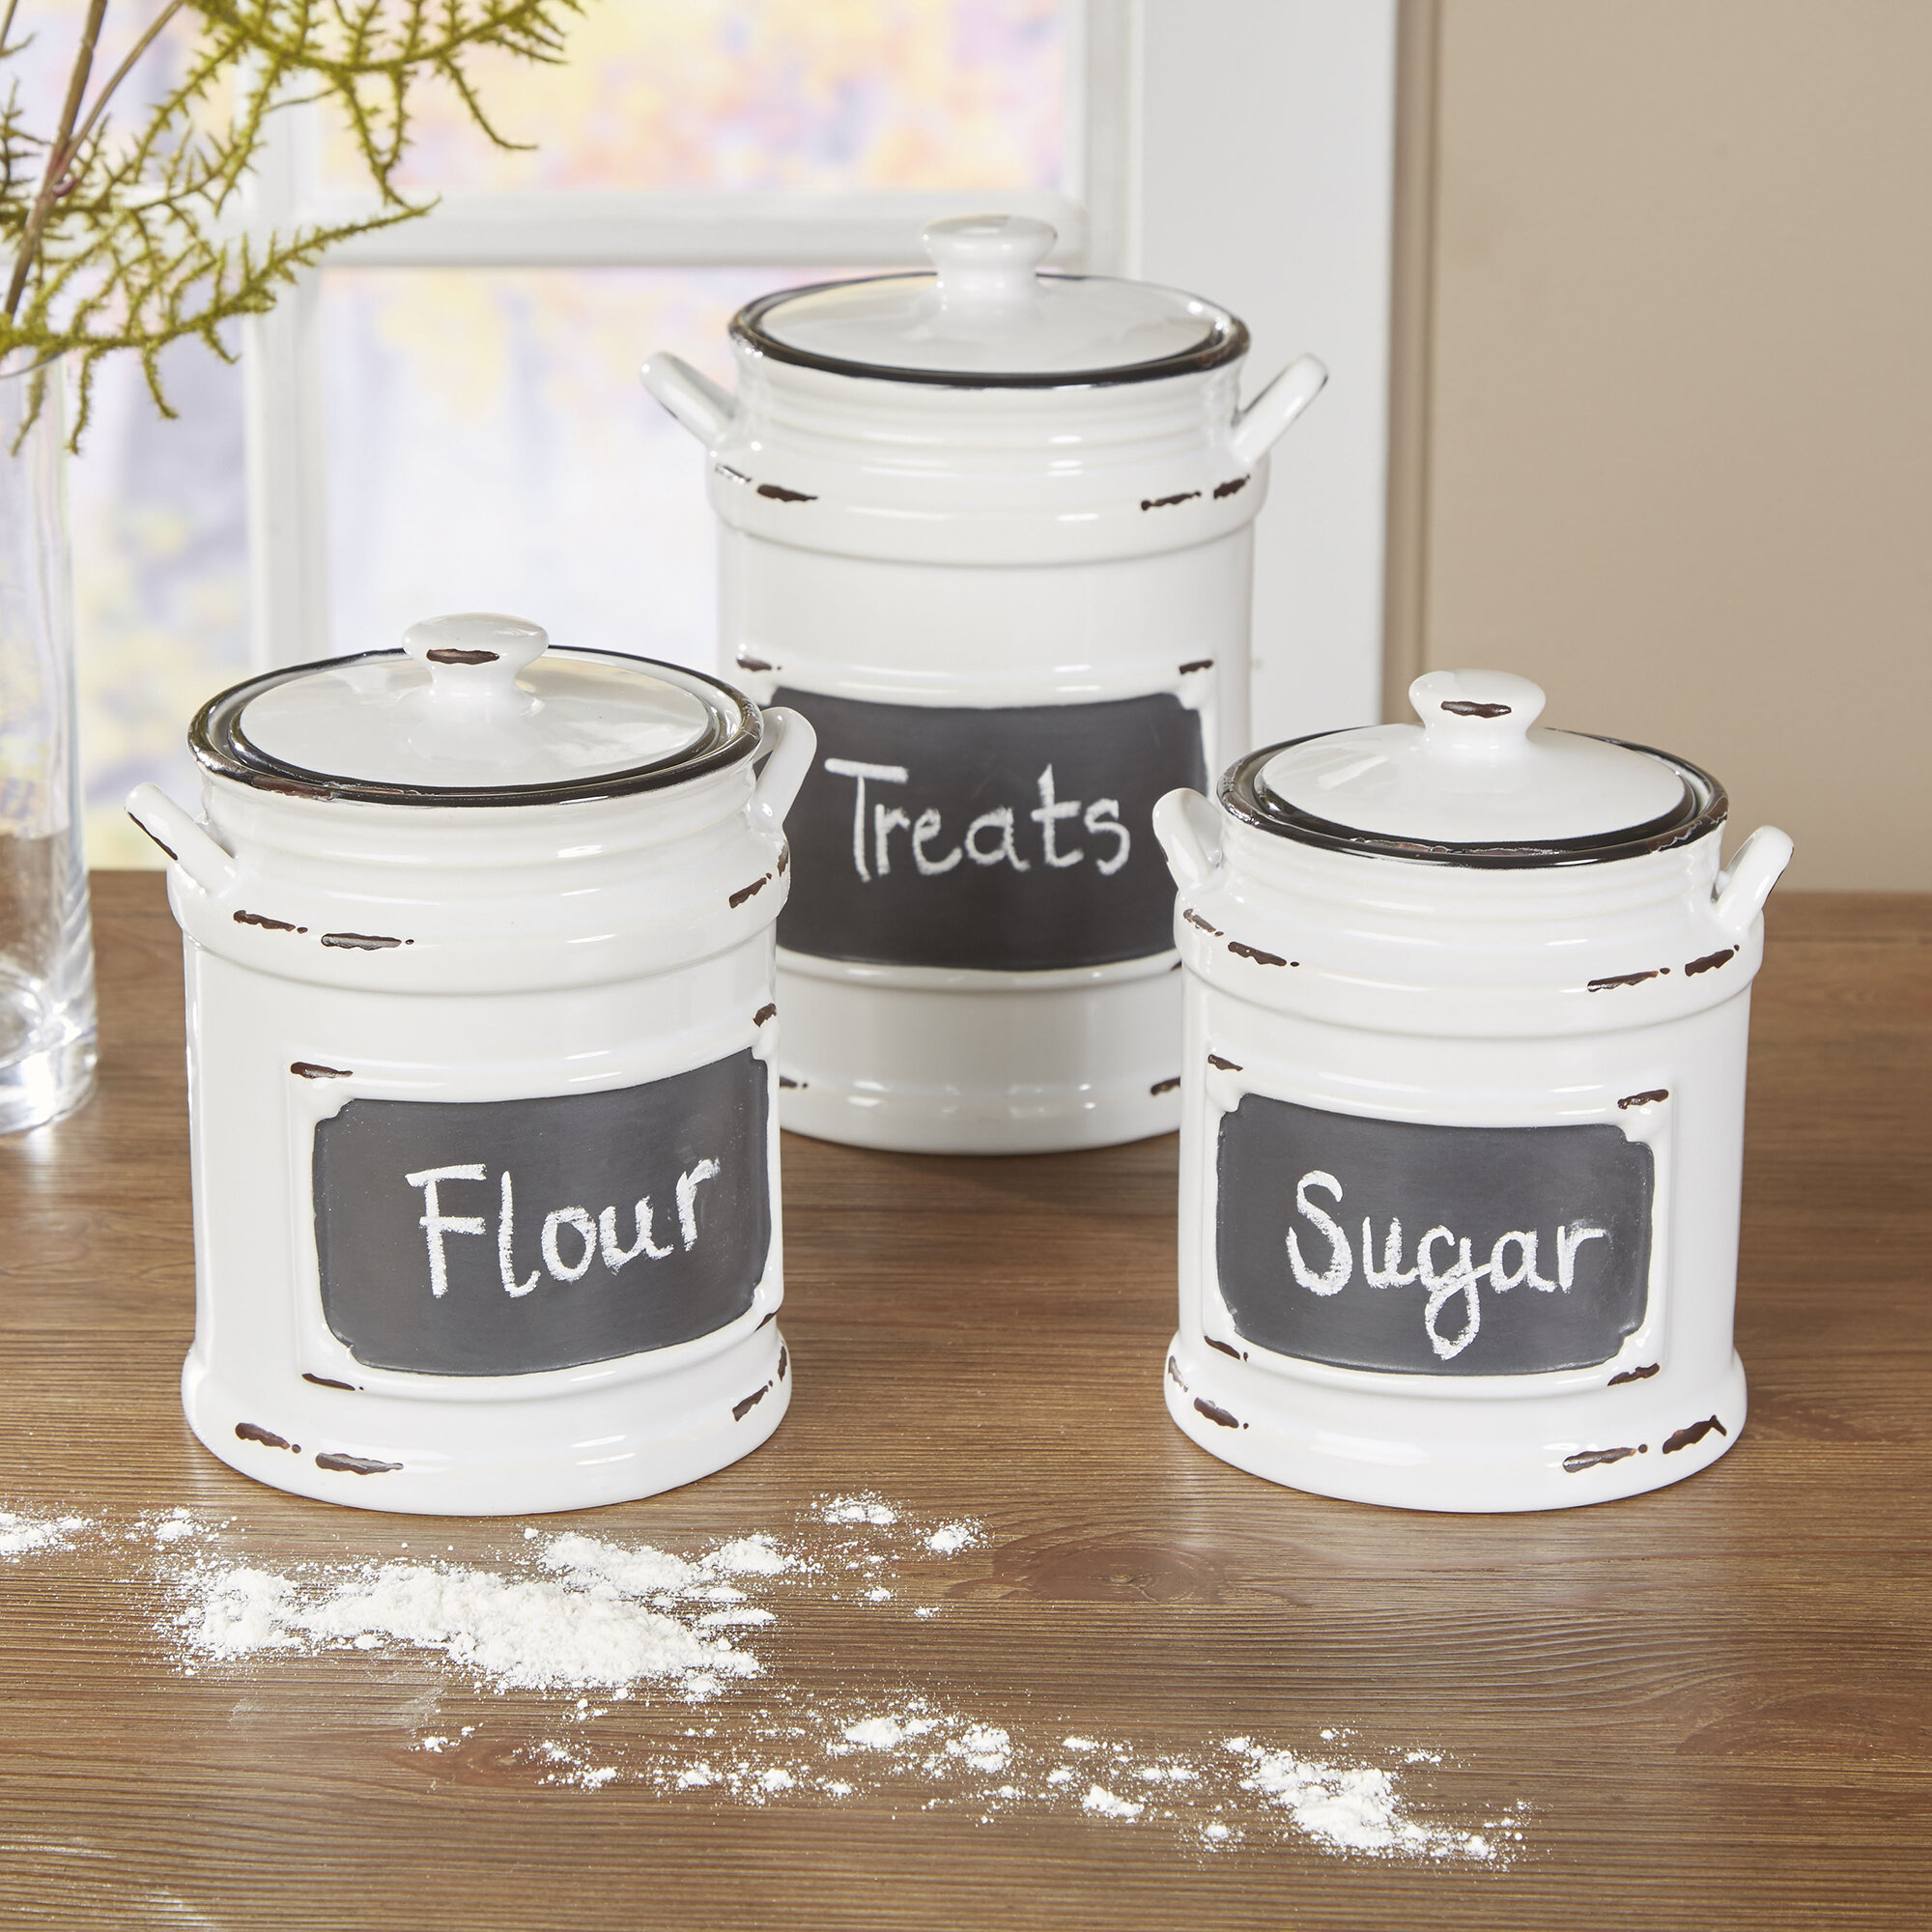 3 Piece Kitchen Canister Set Reviews